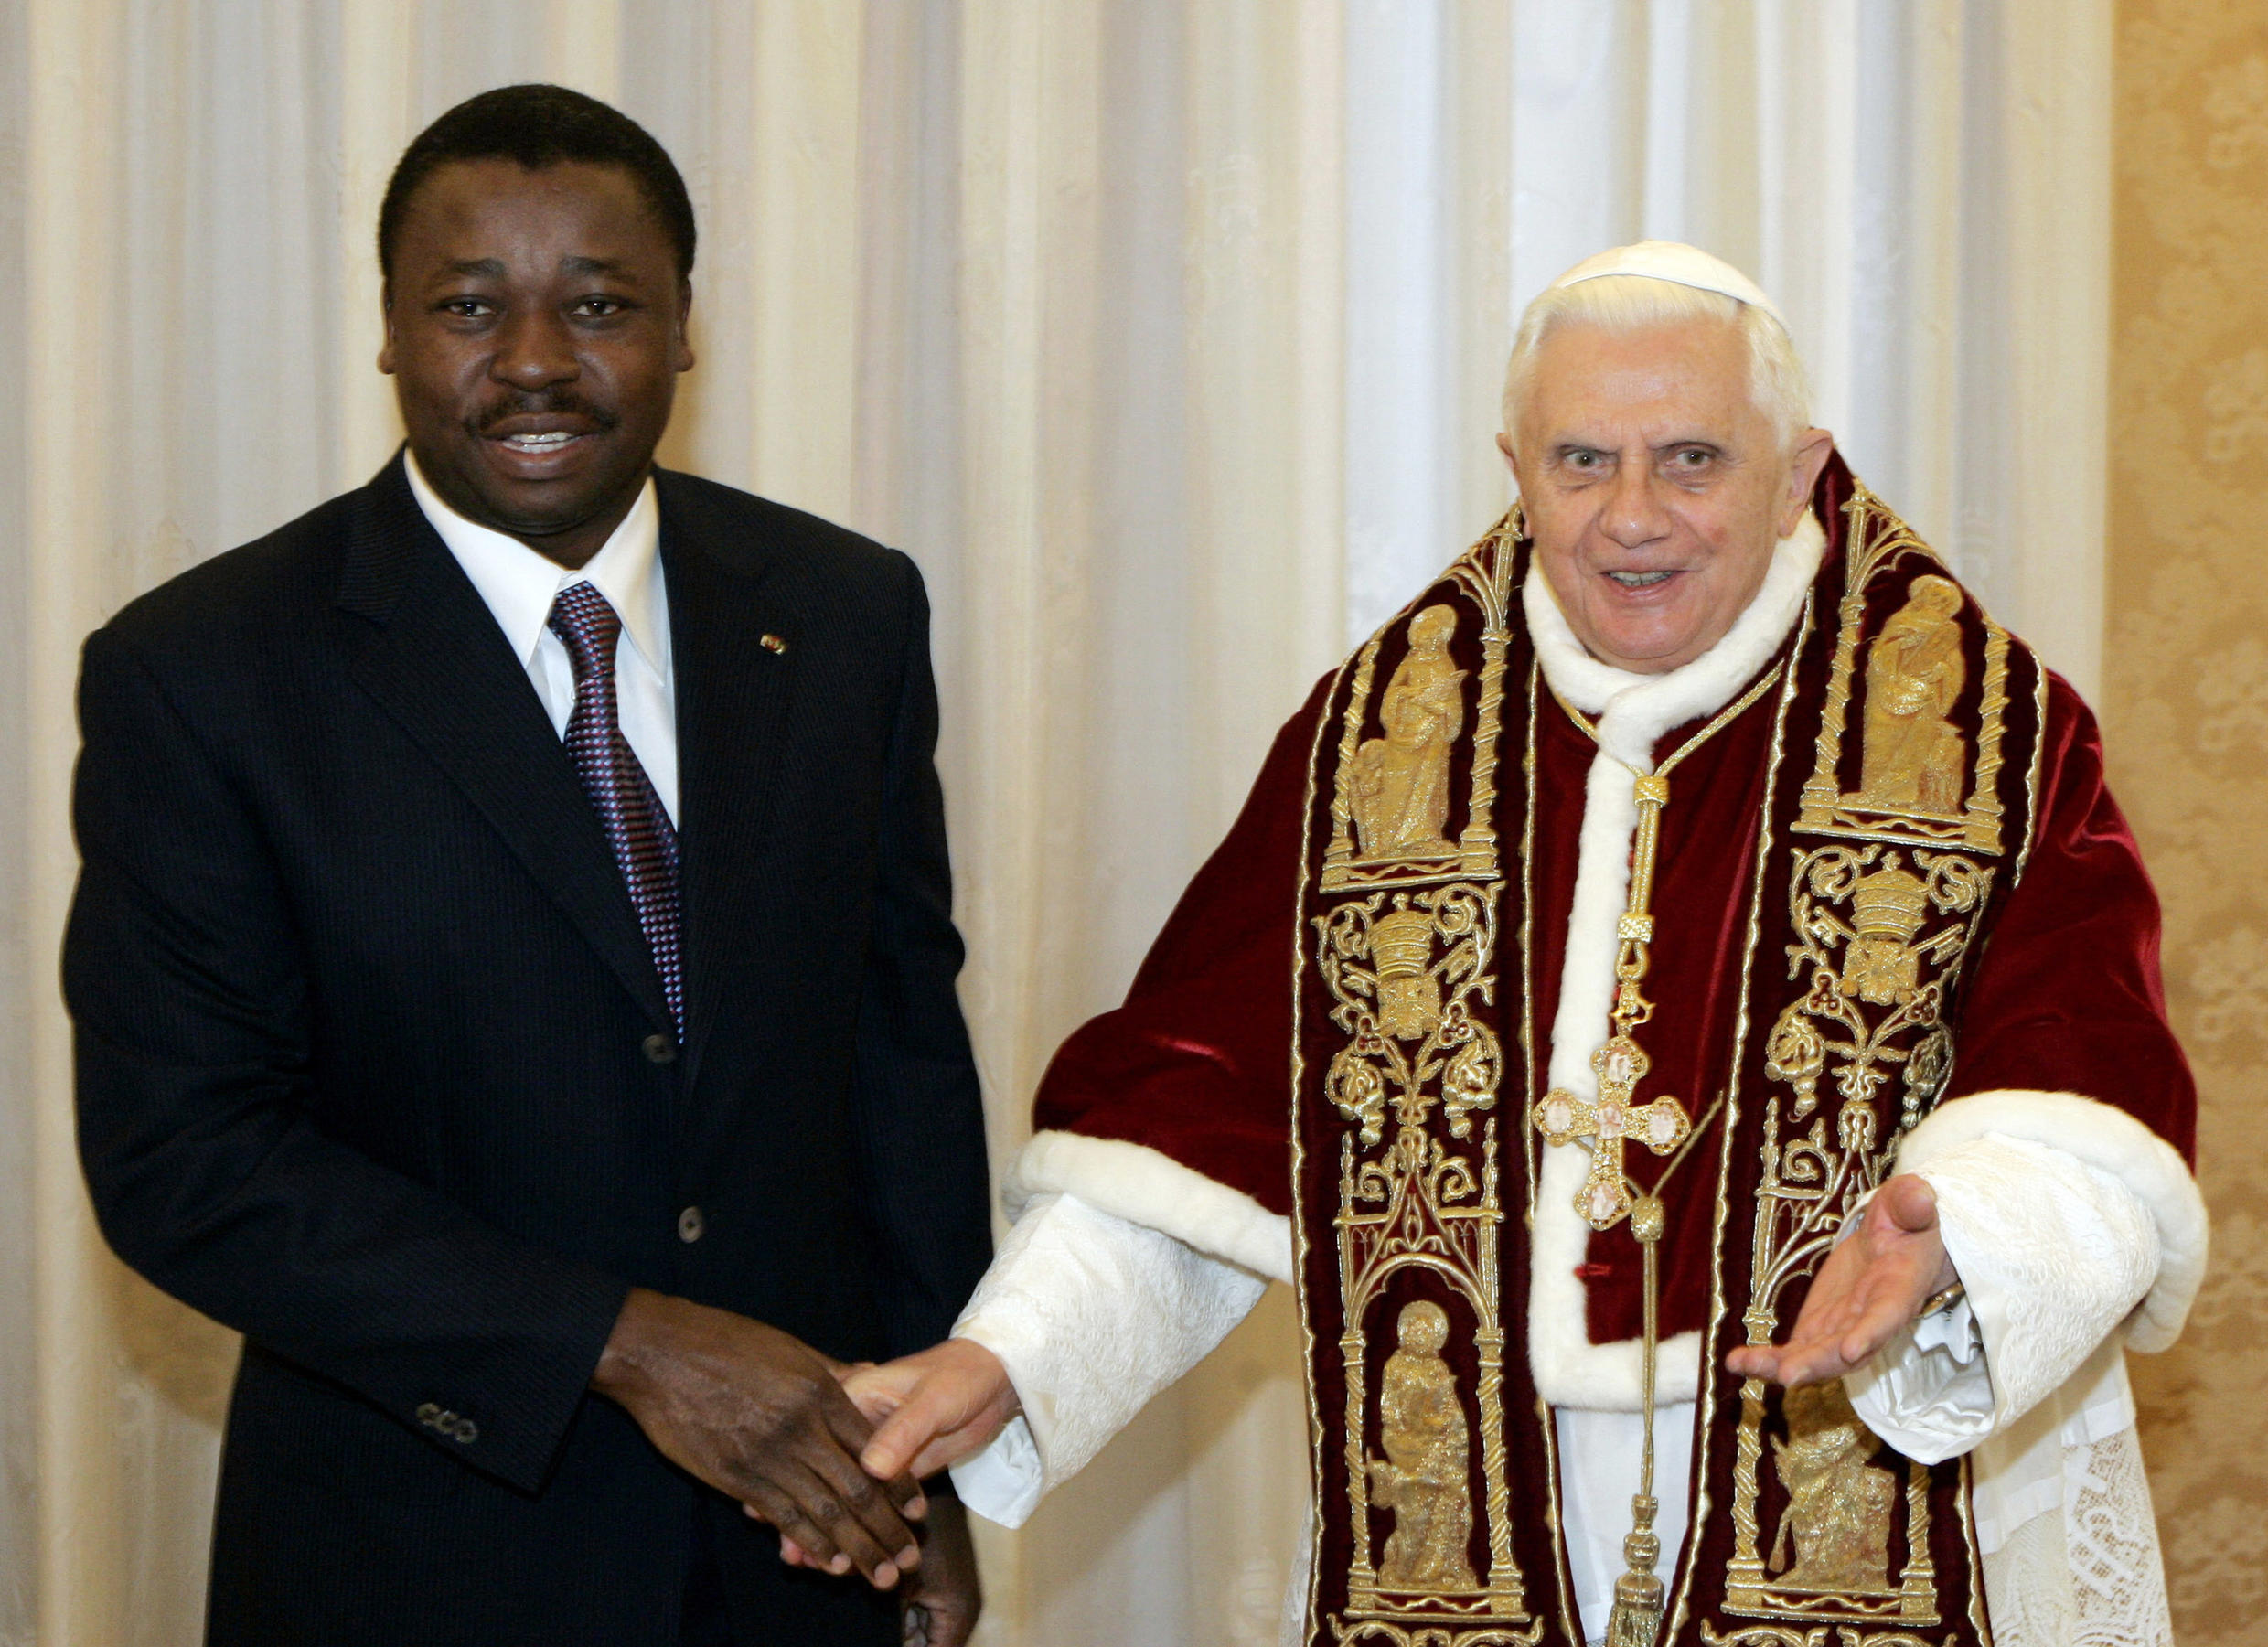 Togo's President Faure Gnassingbé shakes hand with Pope Benedict XVI during a private audience at the Vatican, 19 January 2008.